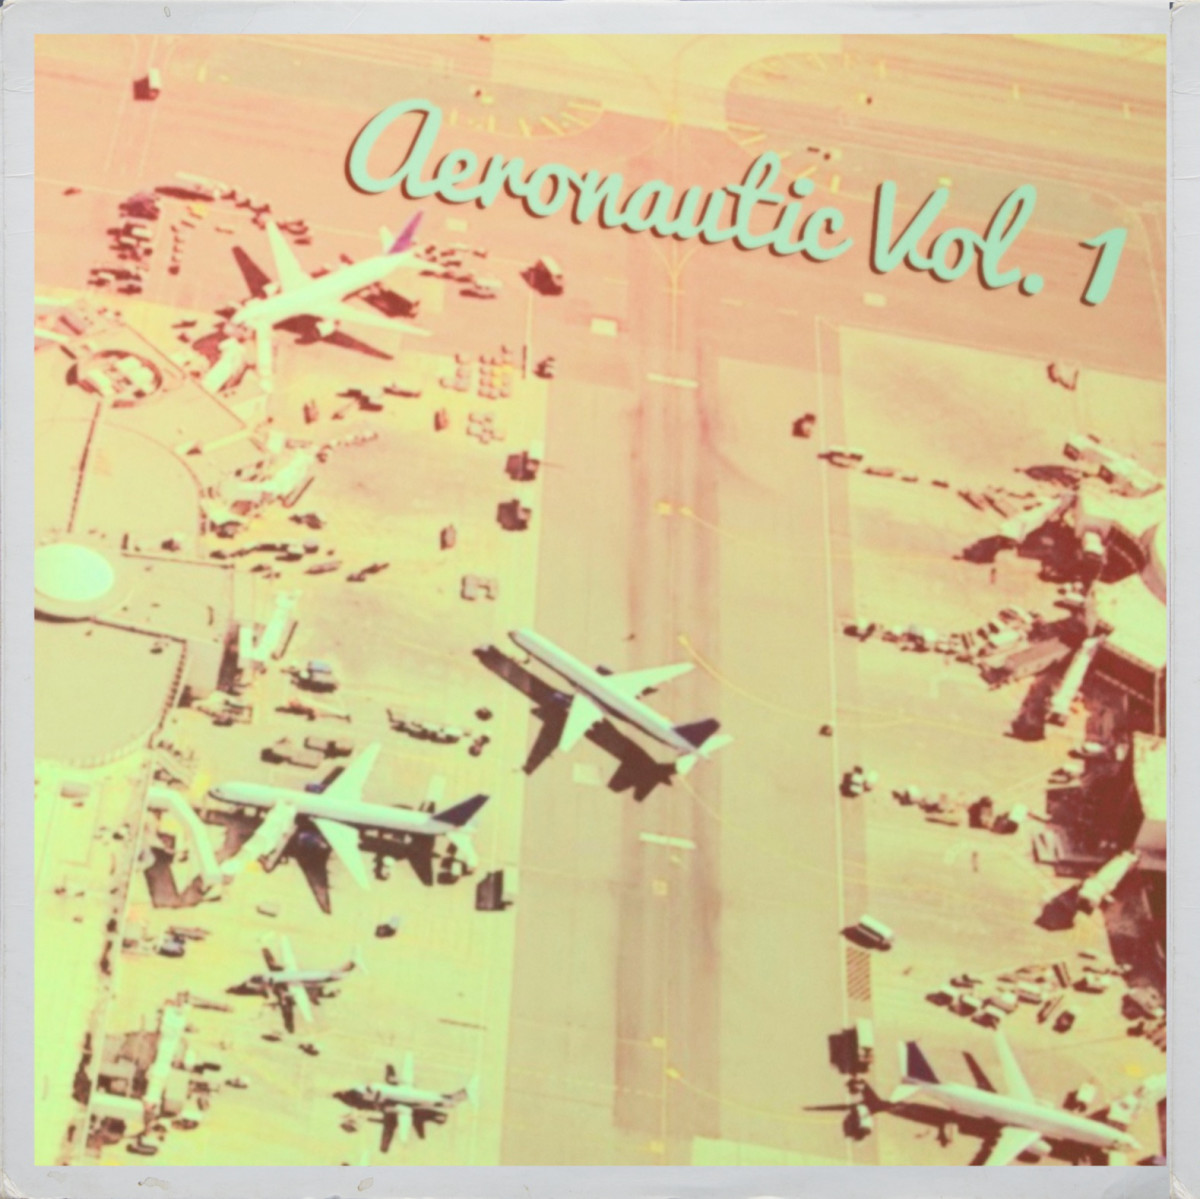 CD Sleeve-AERONAUTIC VOL. 1 (1).JPG